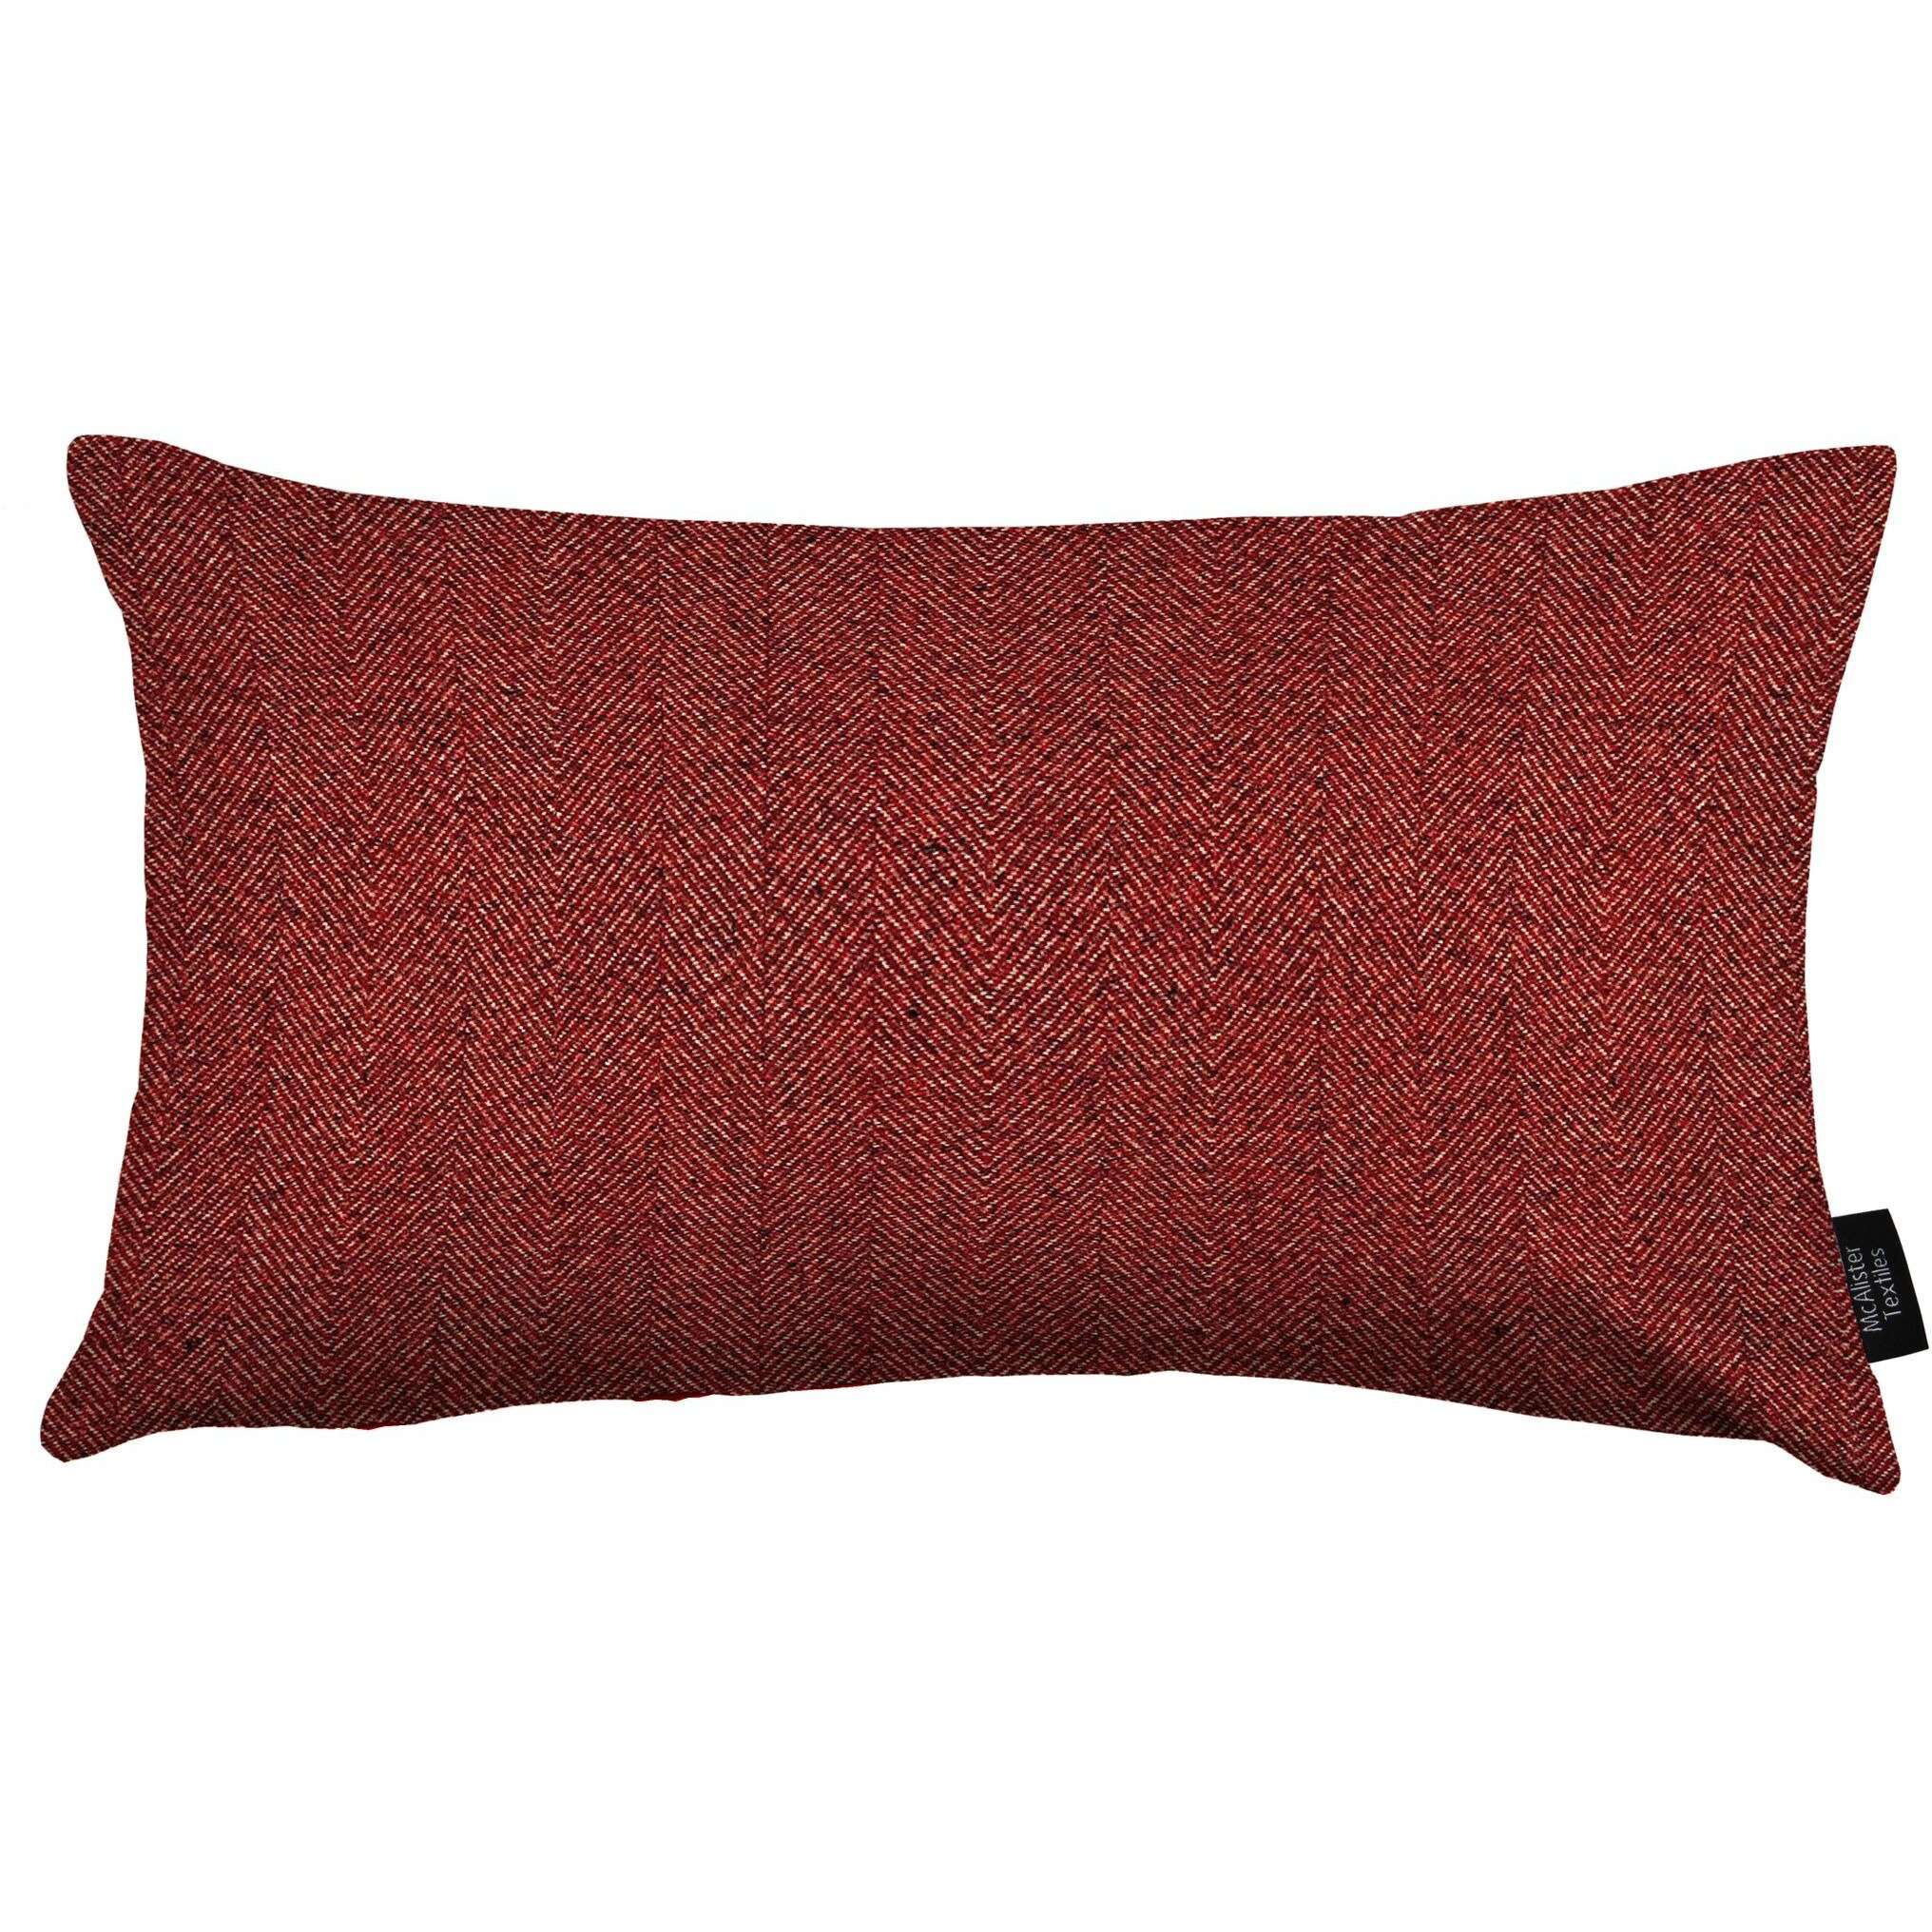 McAlister Textiles Herringbone Red Pillow Pillow Cover Only 50cm x 30cm